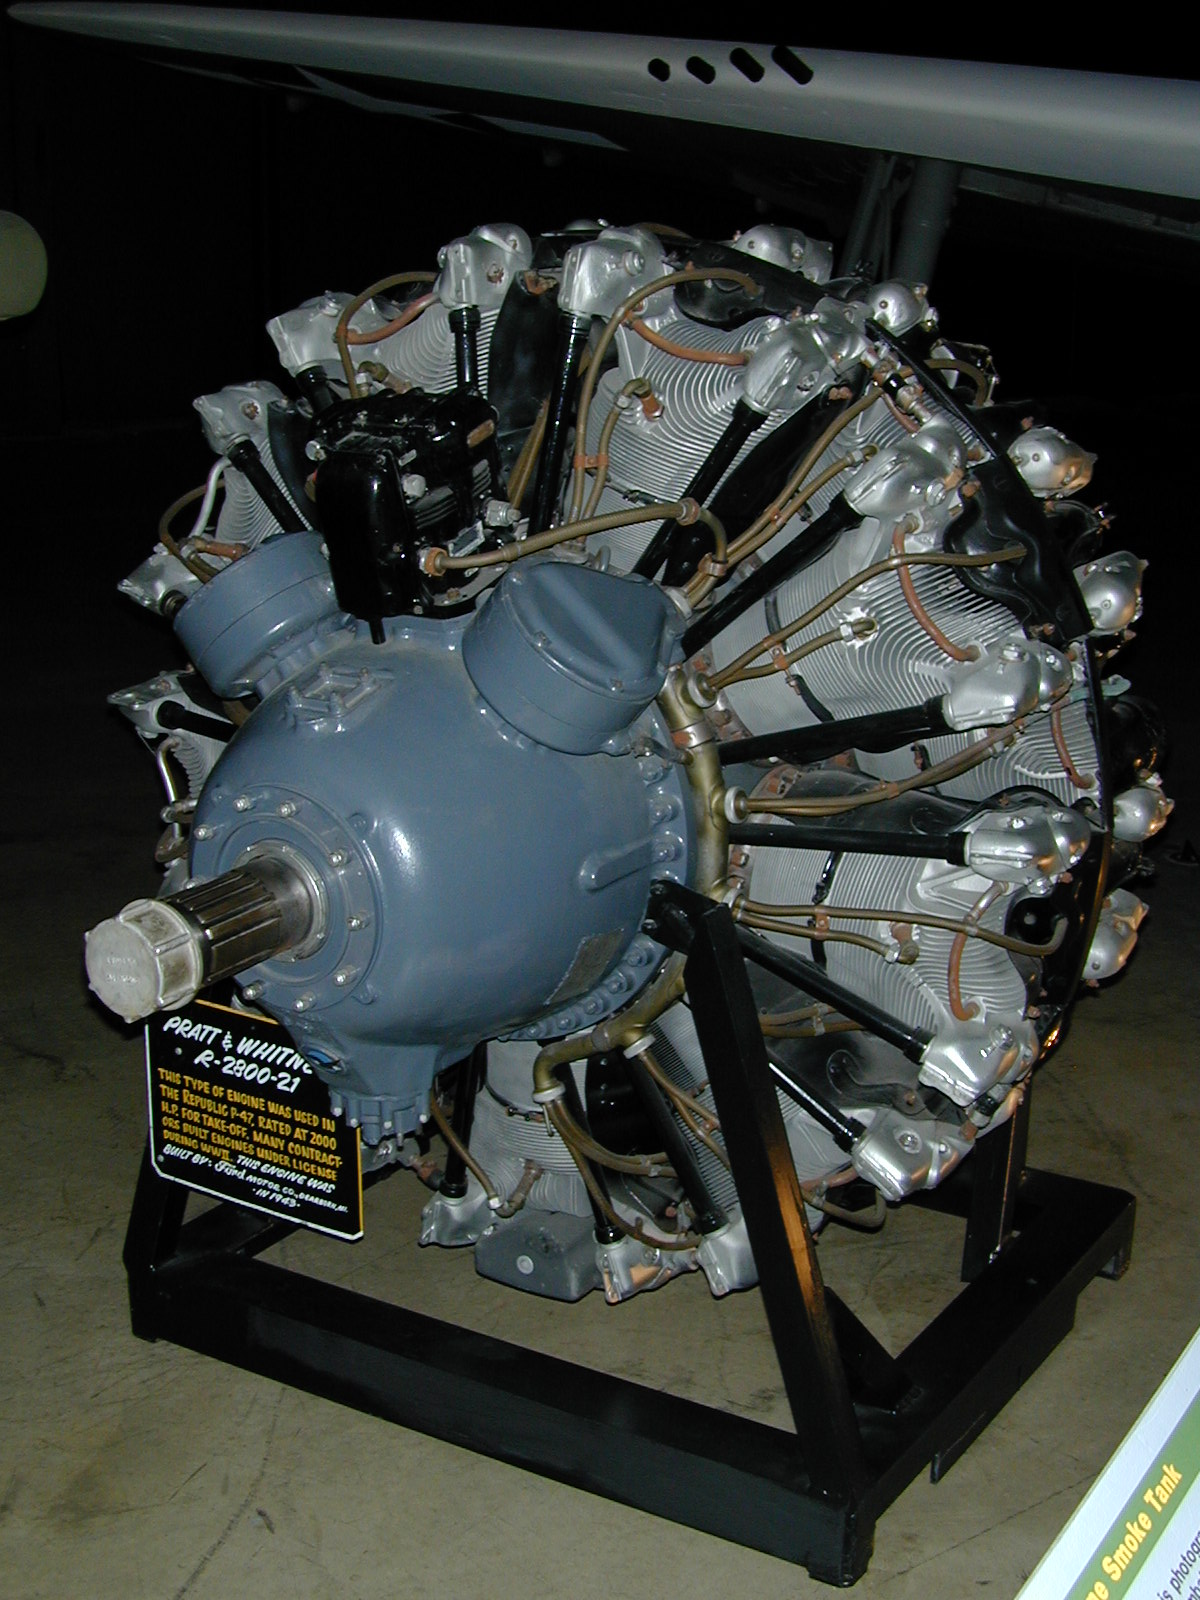 Pratt_&_Whitney_R-2800_Engine_1.jpg